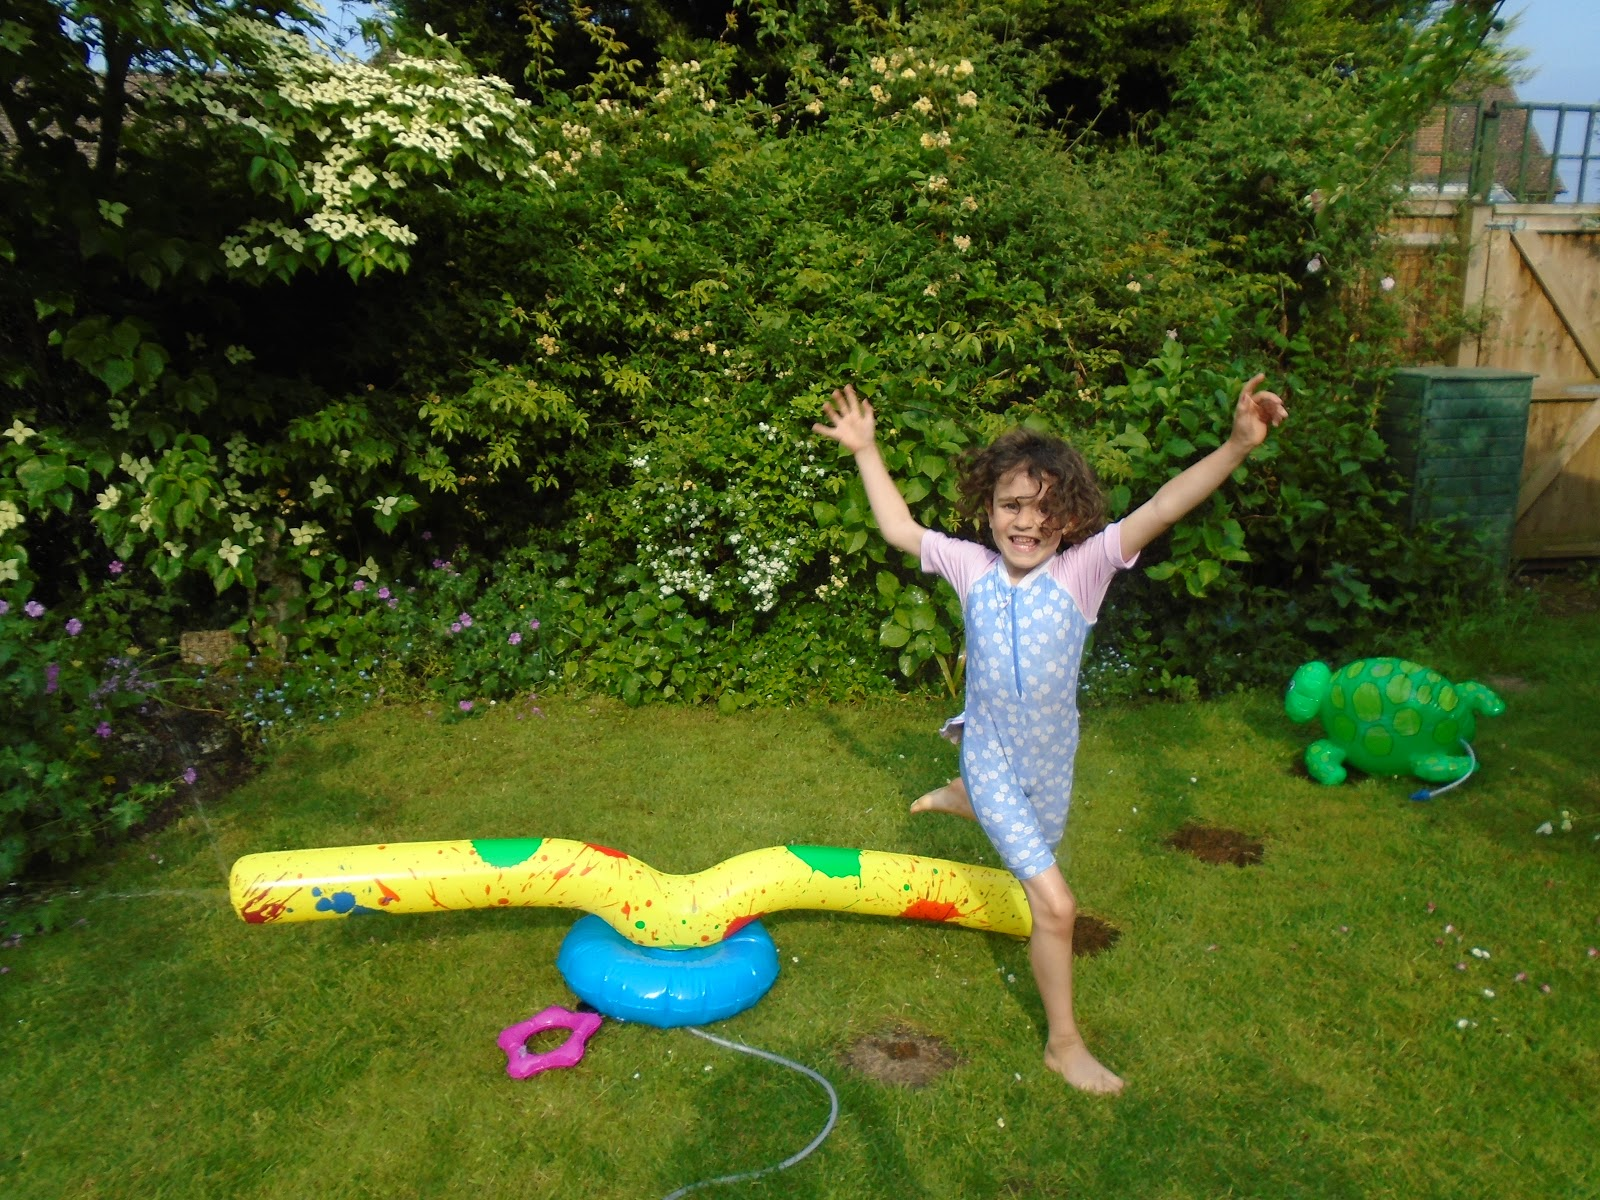 Outdoor Toys For Girls : Get outdoors with the new chad valley summer range argos online